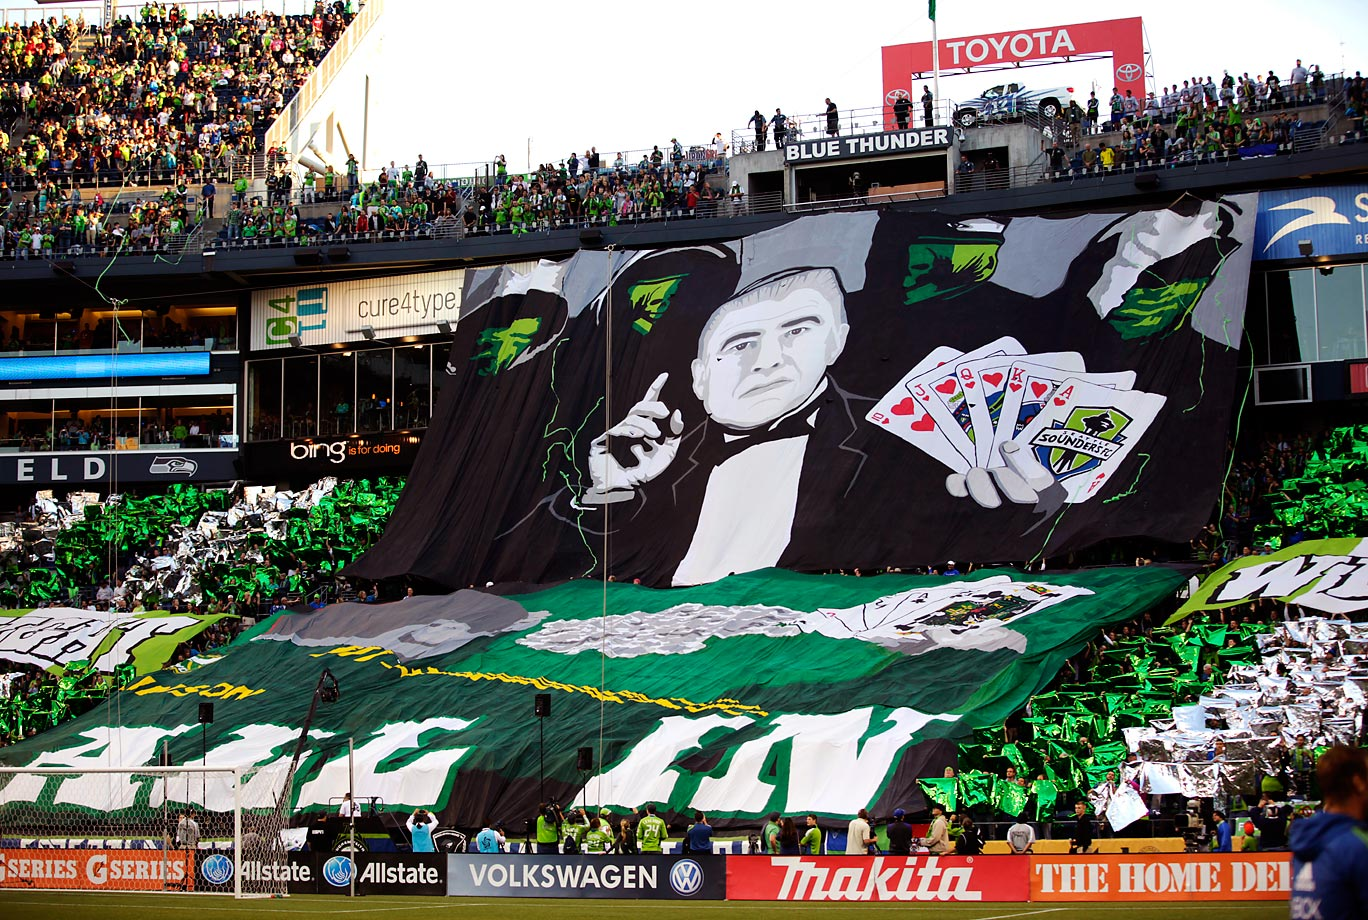 Seattle Sounders fans display their tifo that shows coach Sigi Schmid playing cards and holding a Royal Flush before a match against the Portland Timbers.